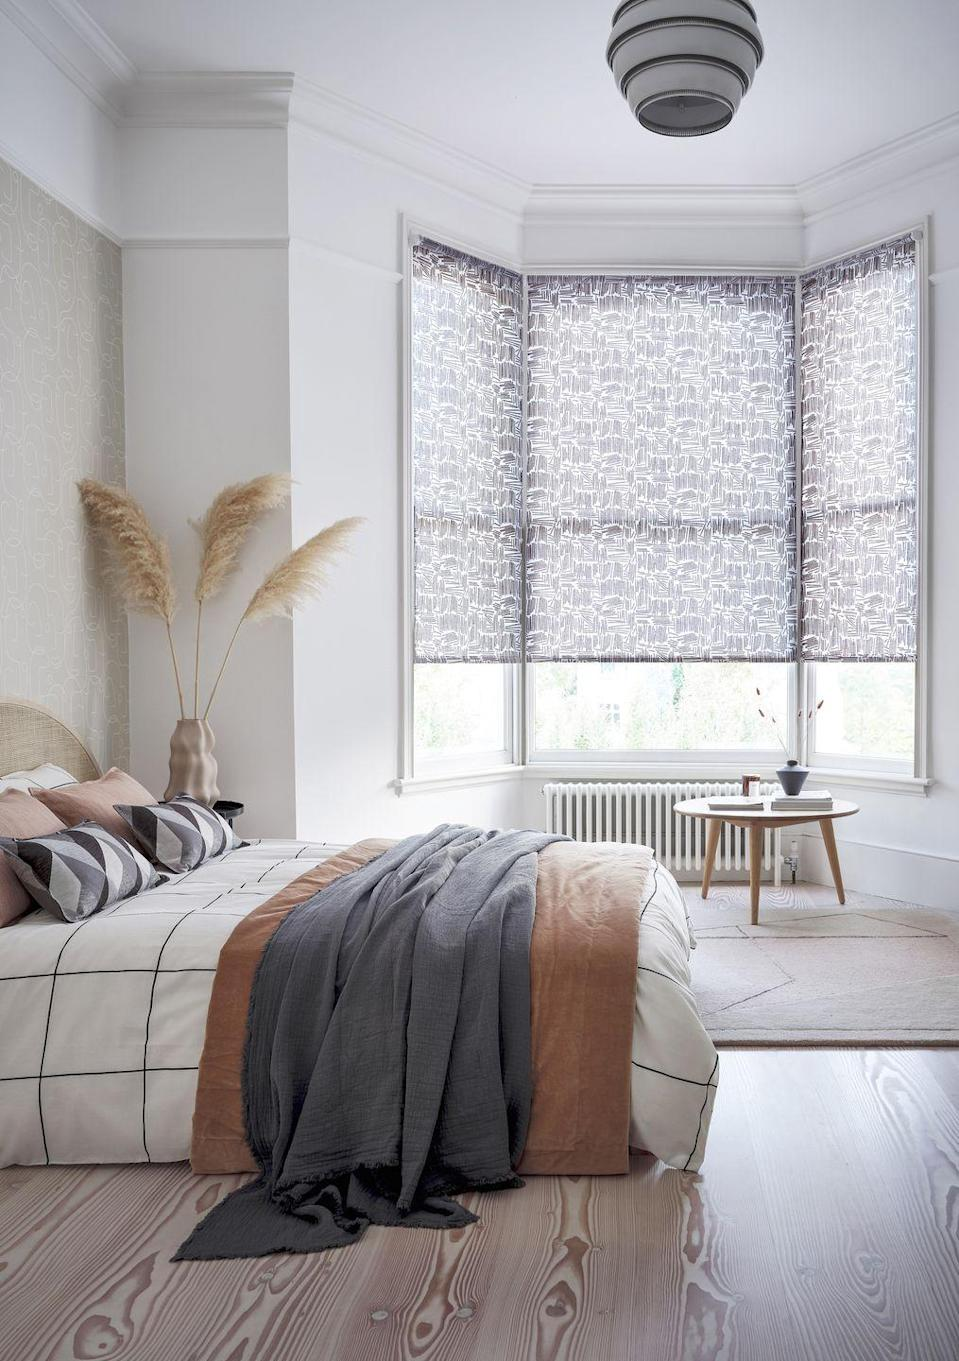 "<p>Matchsticks Mono is a stylish illustrative fabric featuring angled geo lines. It would look fantastic in any interior, and it works especially well in a bedroom, as pictured here. It really complements this pared-back Scandi vibe alongside a palette of burnt orange and subtle pinks.</p><p><a class=""link rapid-noclick-resp"" href=""https://www.hillarys.co.uk/products/matchsticks-mono-roller-blind/"" rel=""nofollow noopener"" target=""_blank"" data-ylk=""slk:Order a sample and request an appointment"">Order a sample and request an appointment</a></p>"